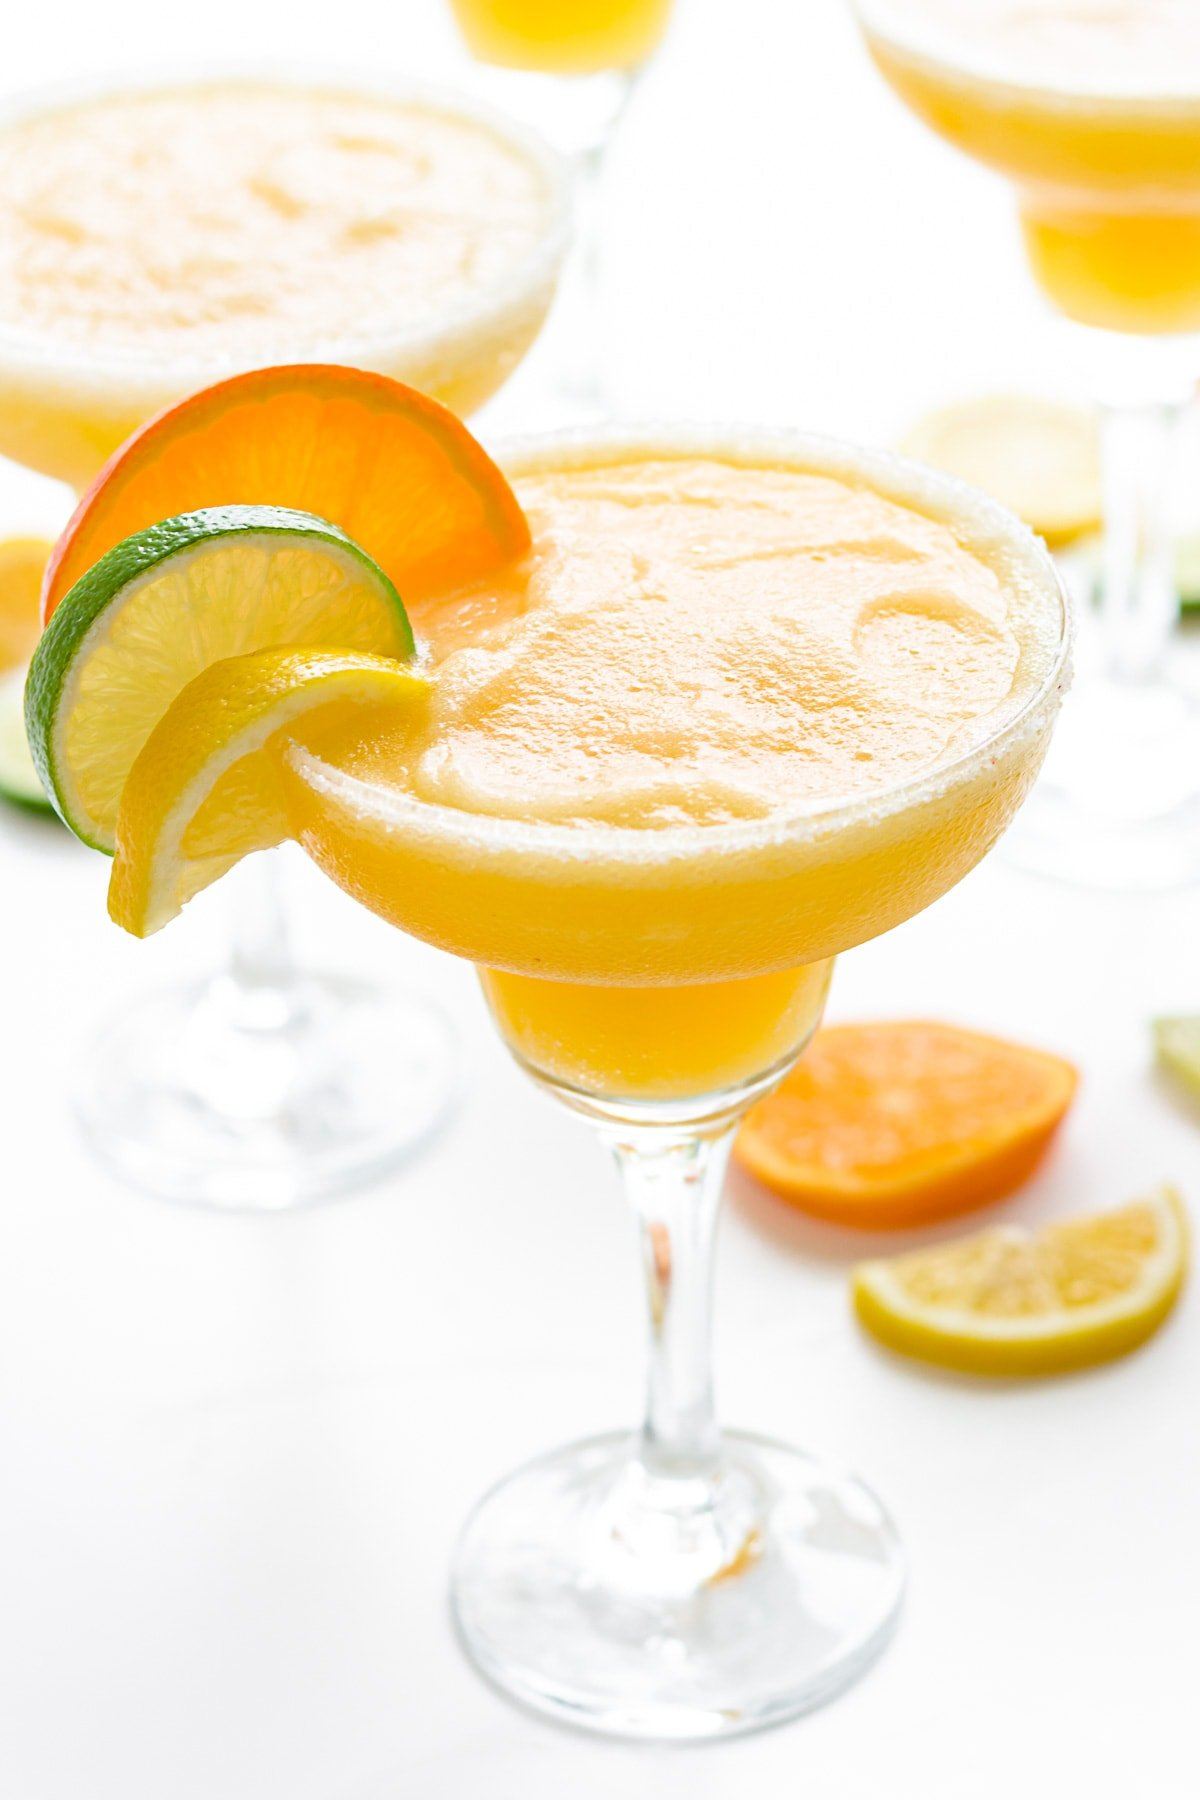 Frozen citrus margaritas garnished with slice of orange, lemon and lime.